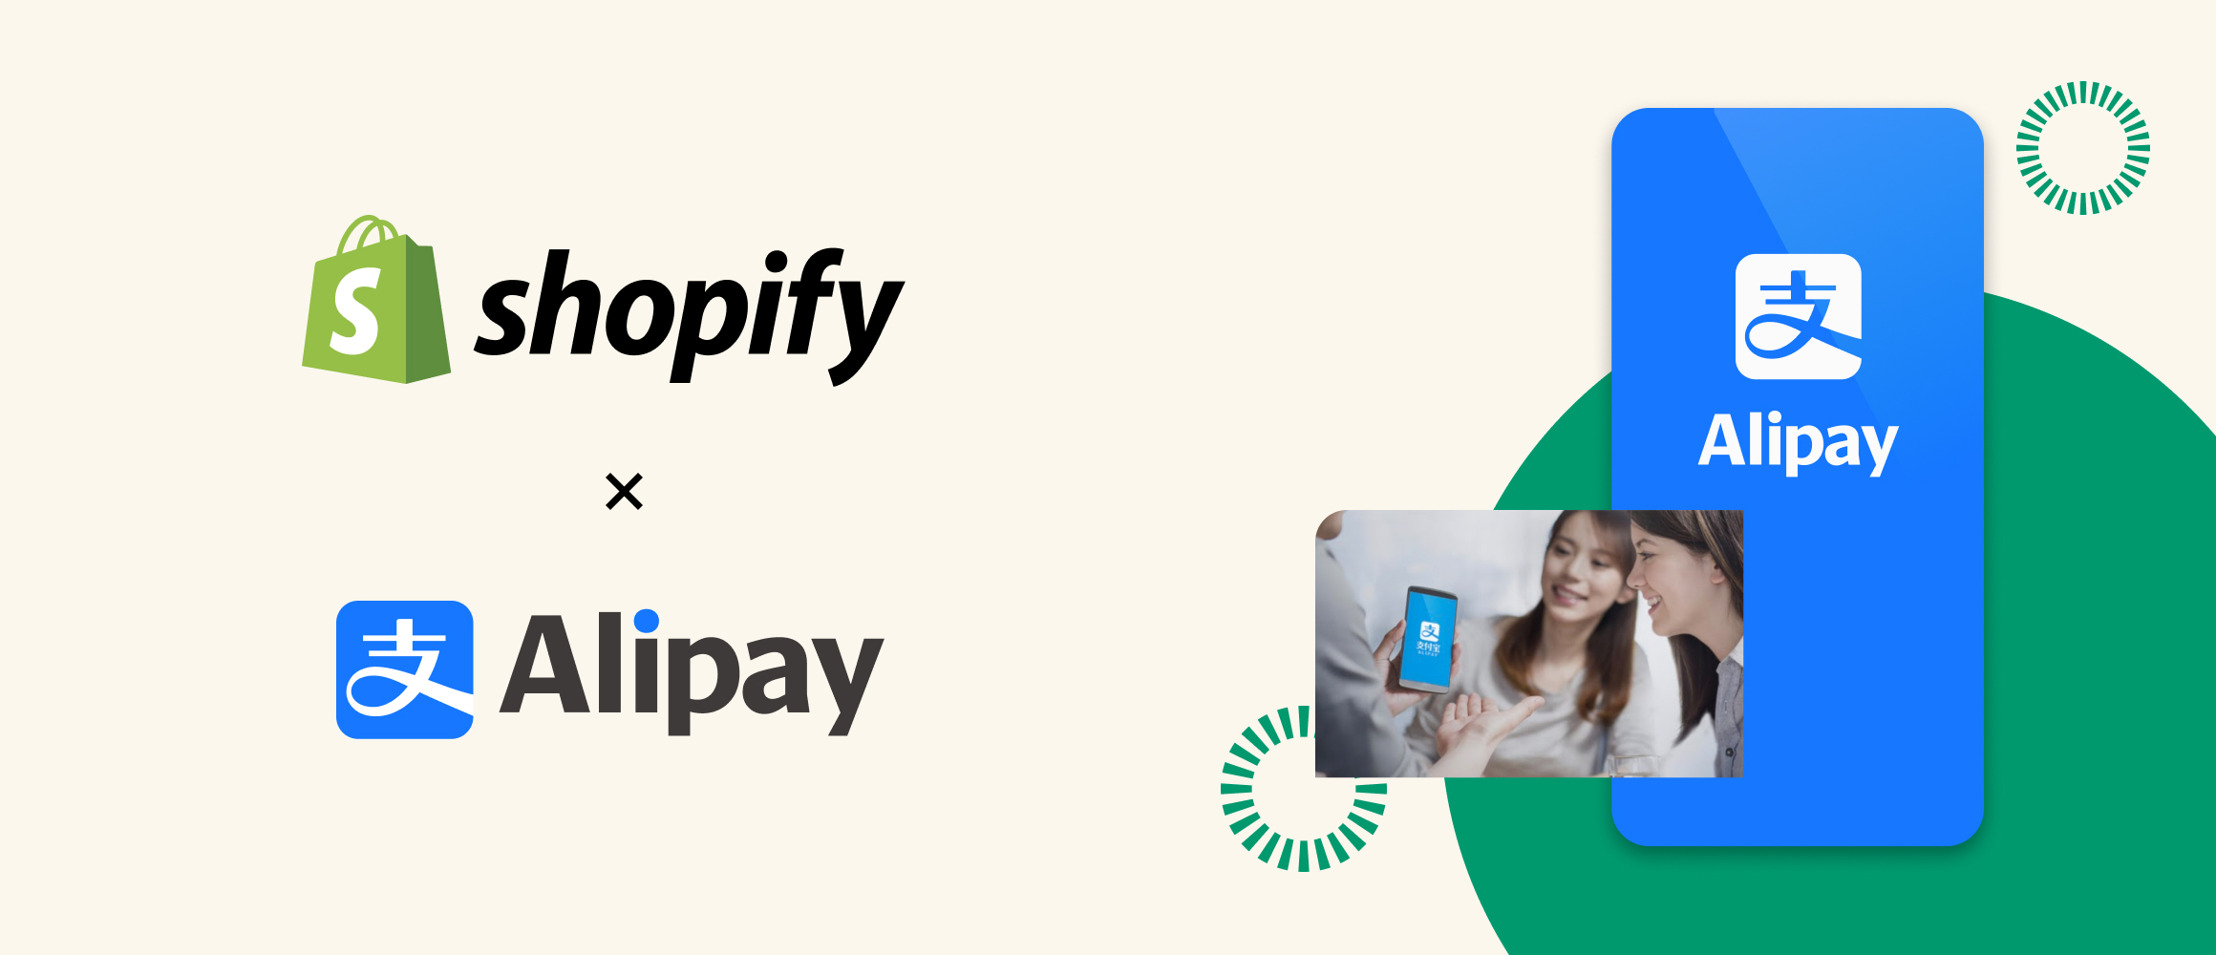 Shopify and Alipay have partnered on a new payments gateway for U.S.-based merchants serving Asian consumers.